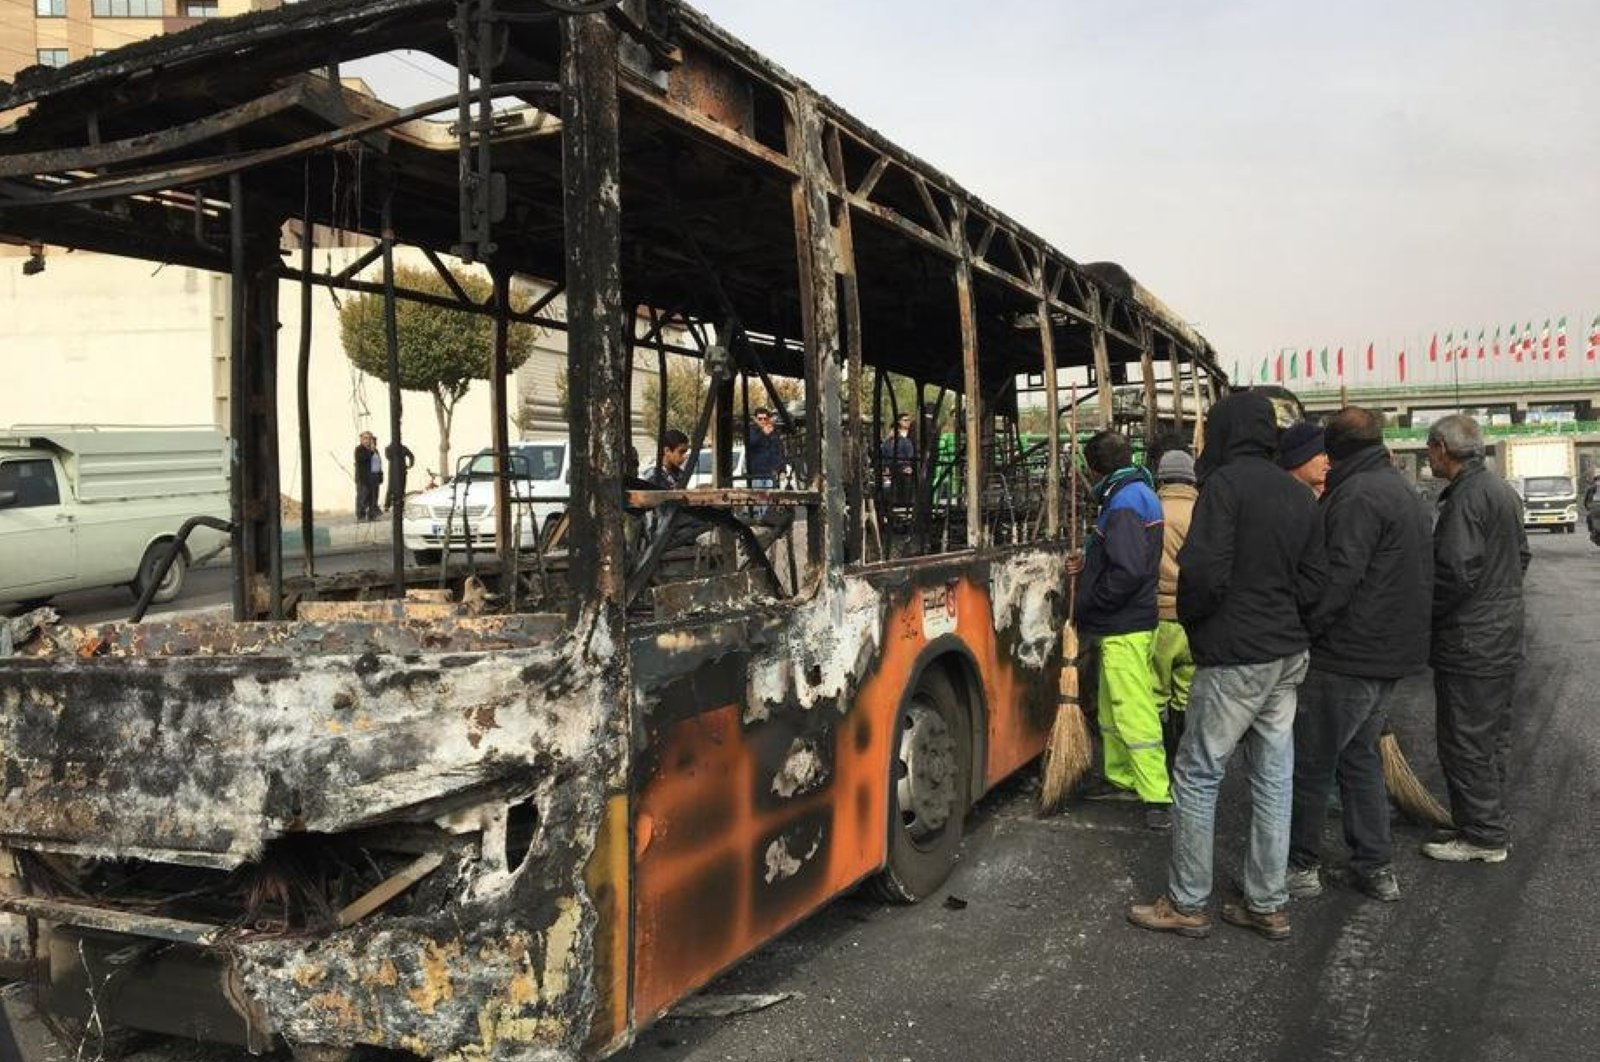 People gather around the wreckage of a public transportation bus that was burnt overnight during the protests over increasing fuel prices, Isfahan, central Iran, Nov. 17, 2019. (EPA-EFE Photo)